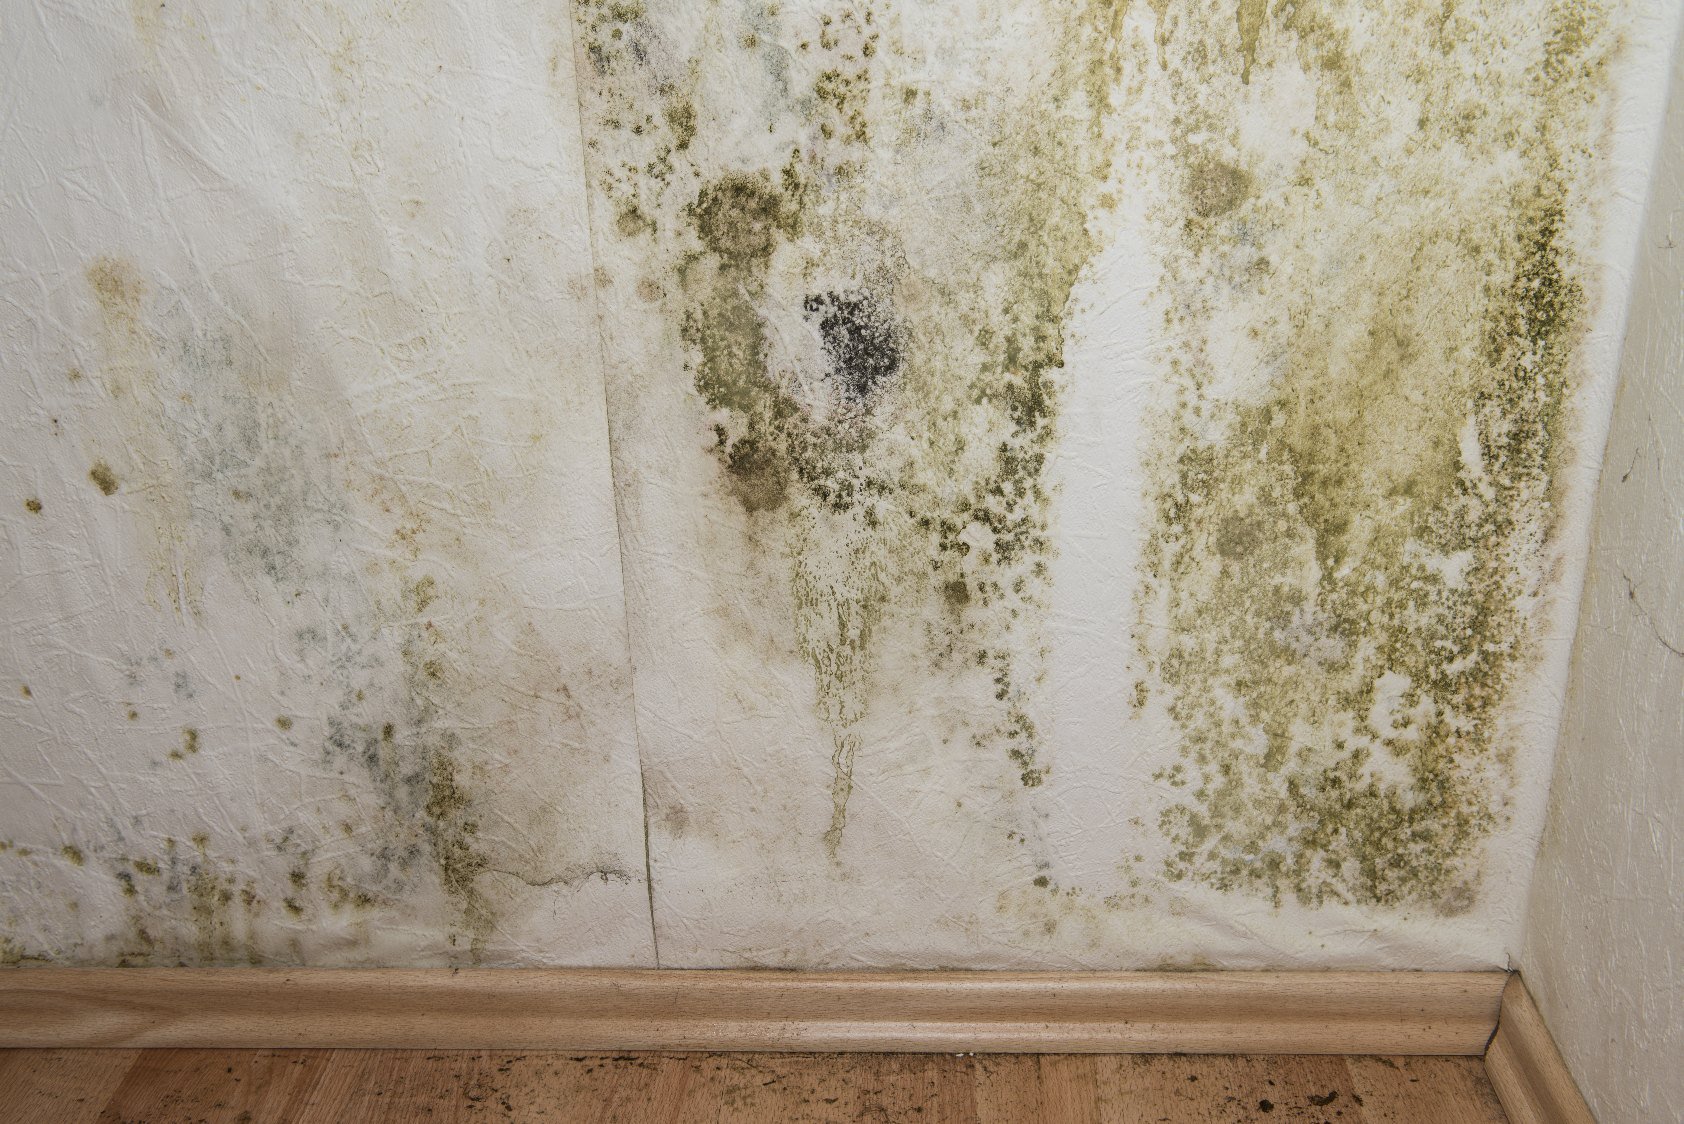 Asheville Mold Remediation Company